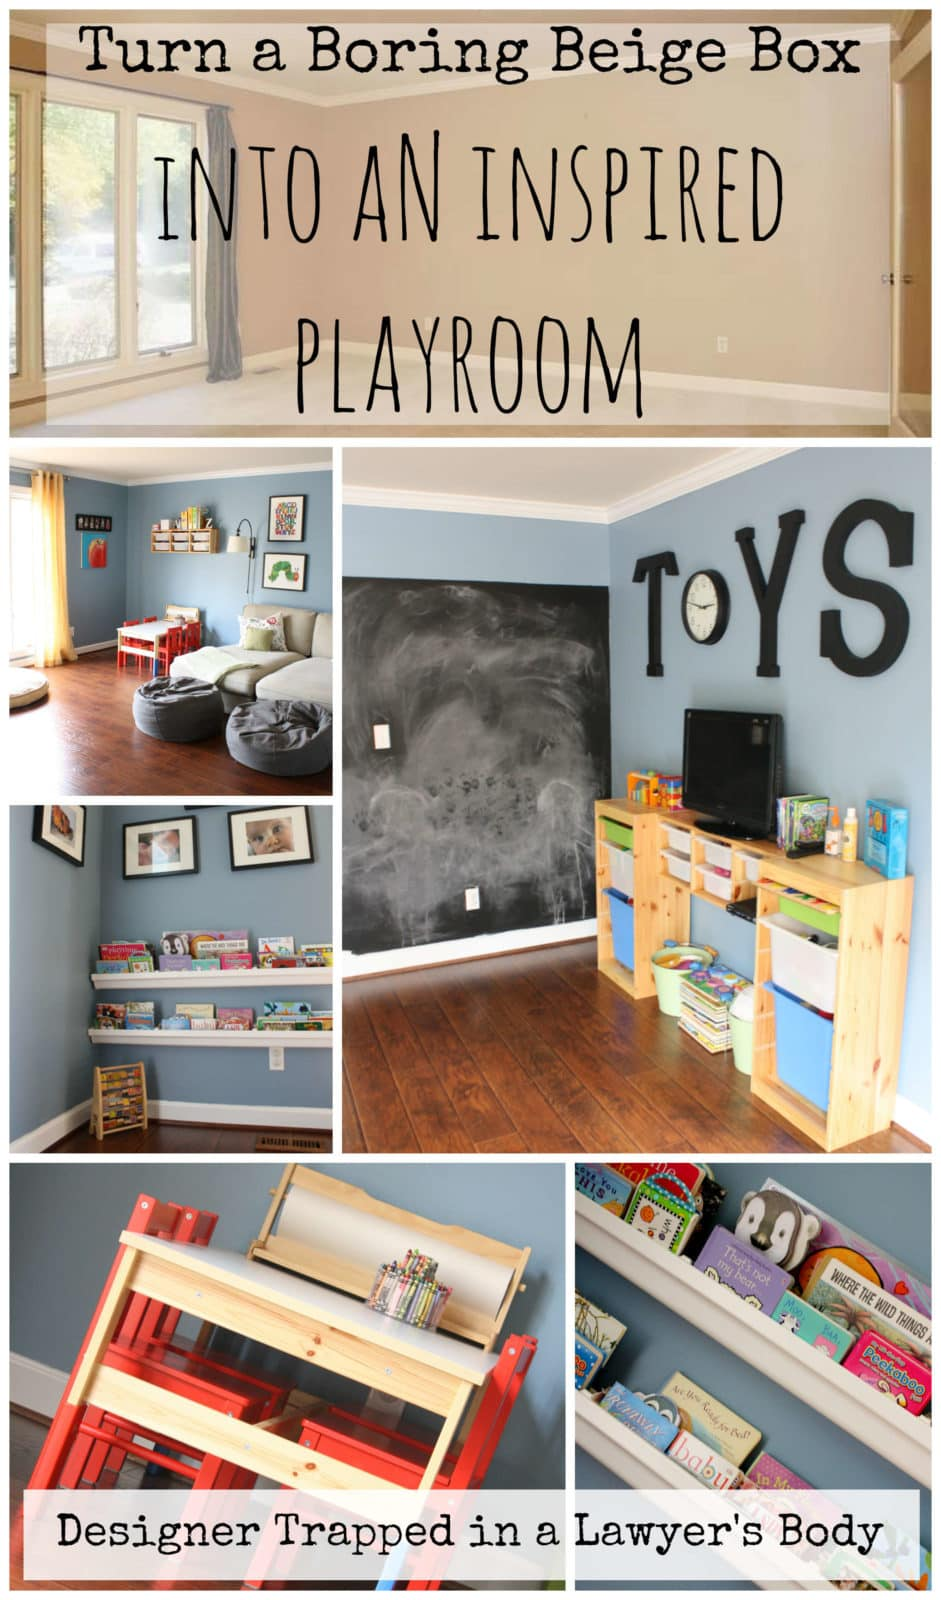 MUST PIN!  Create an inspired playroom for your kids!  Playroom reveal by Designer Trapped in a Lawyer's Body {www.designertrapped.com}